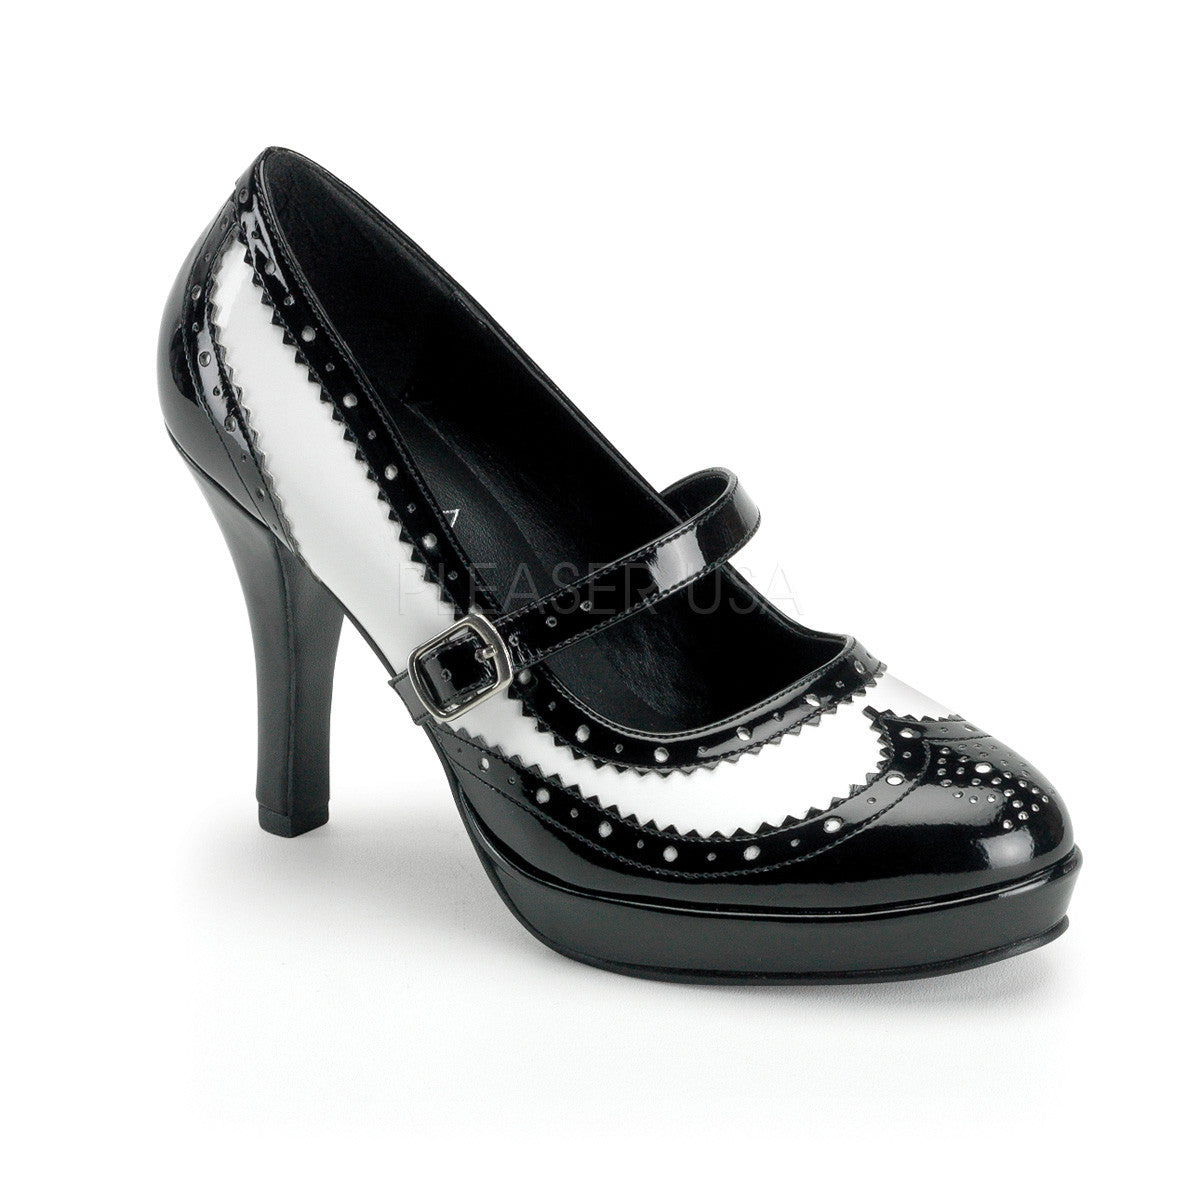 FUNTASMA CONTESSA-06 Black-White Pat Mary Jane - Shoecup.com